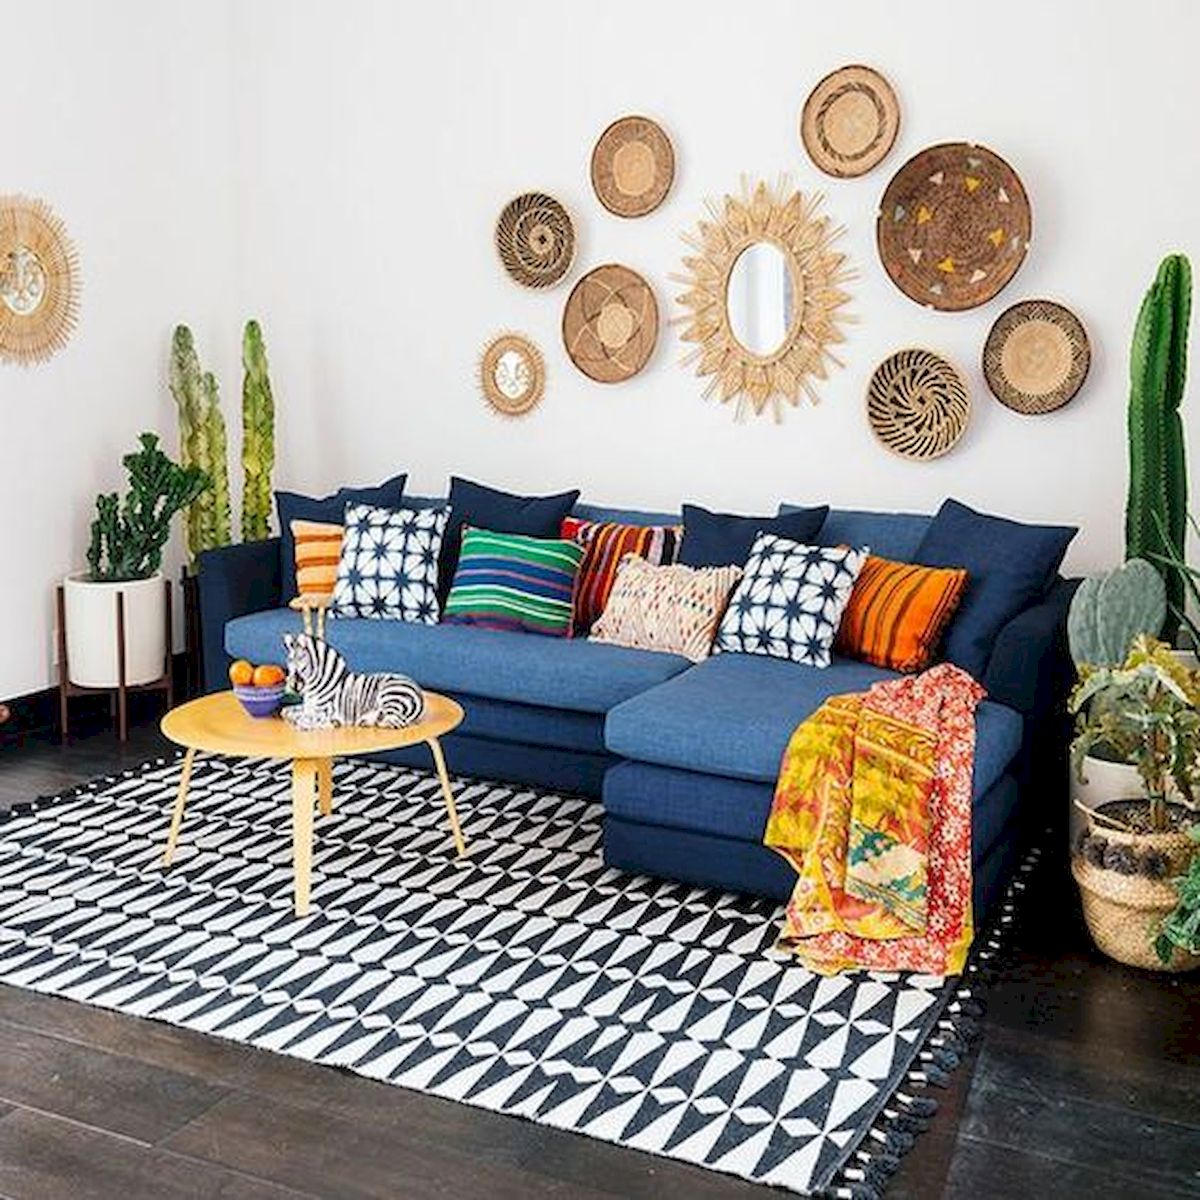 73 Eclectic Living Room Decor Ideas (15)